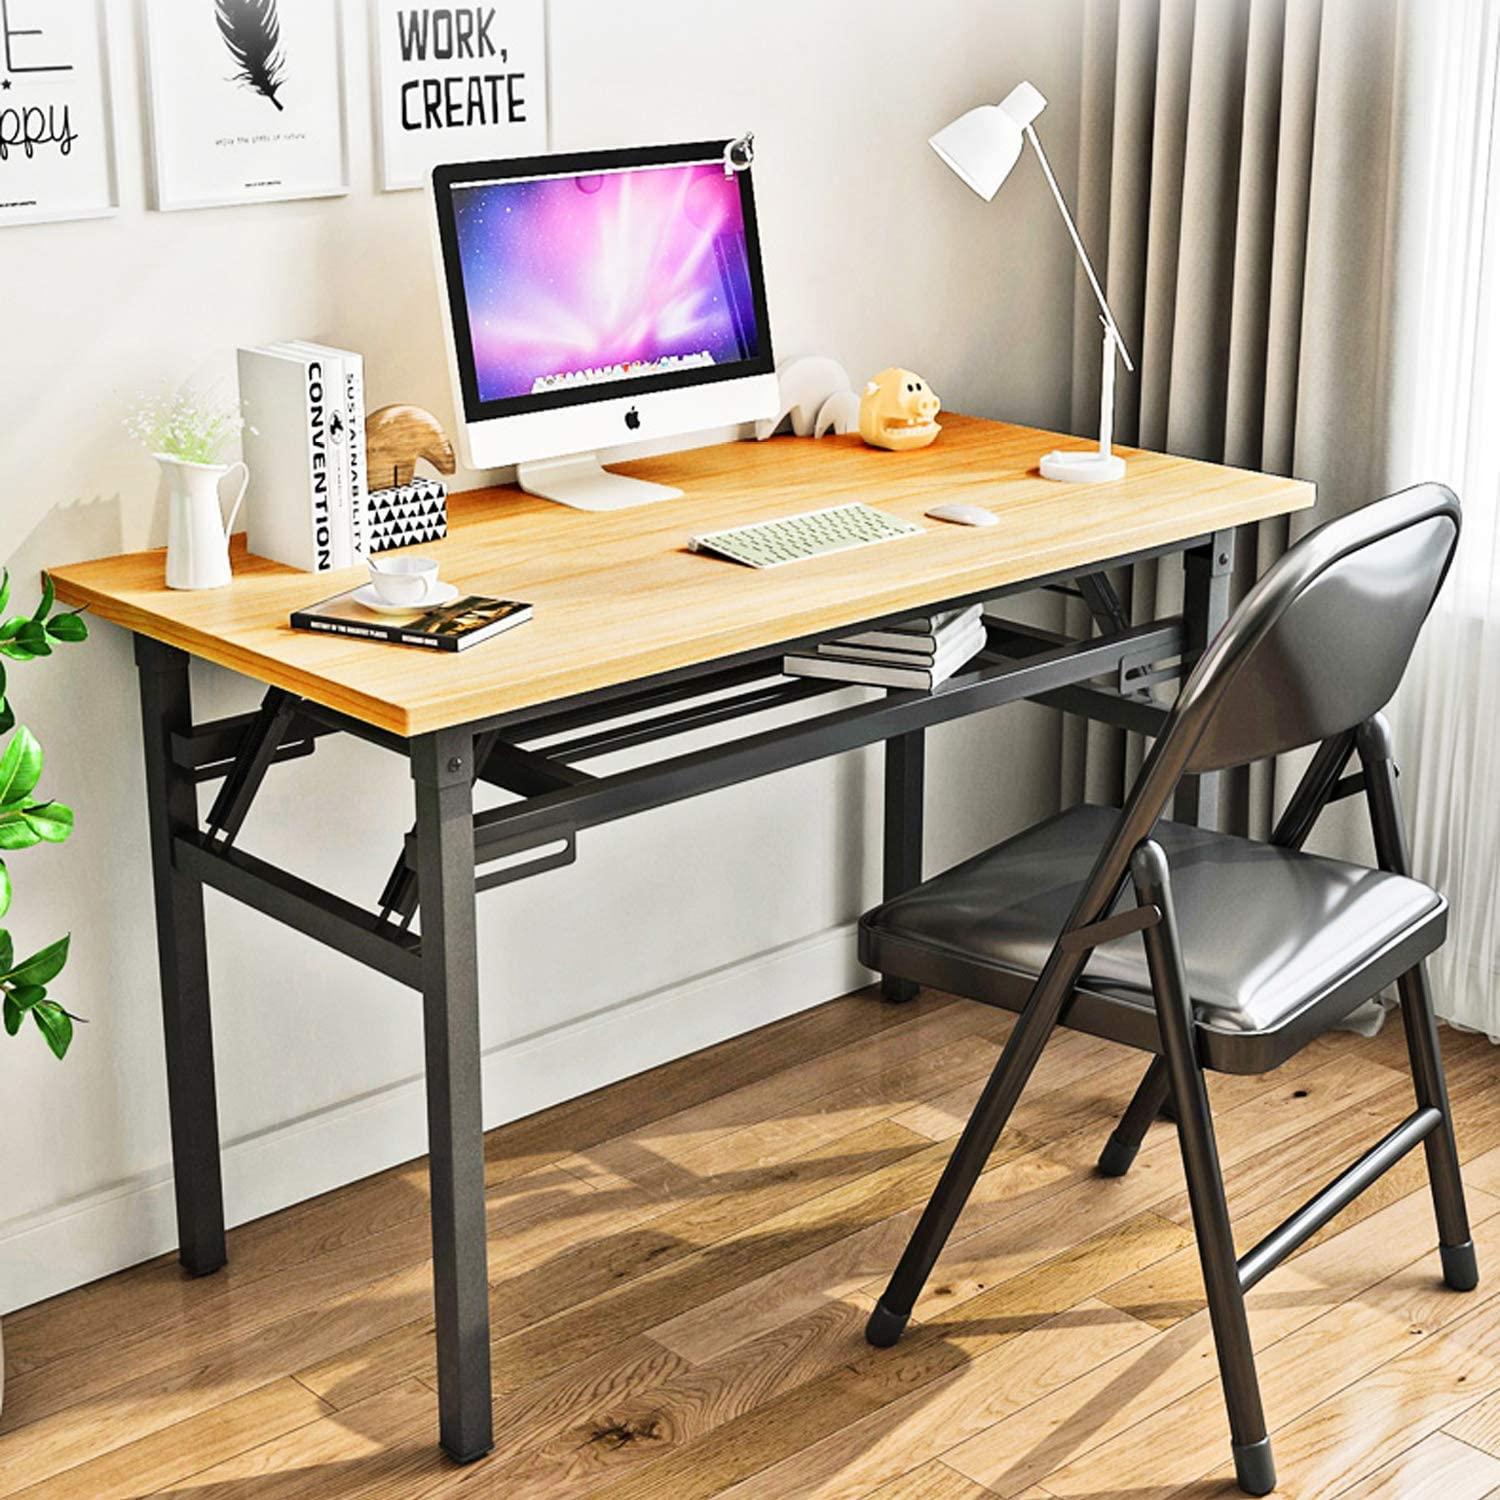 Portable Folding Computer Desk Table YJHome Foldable Student Writing Desk 31.5'' X 15.75'' X 29'' Brown Laptop Folding Desk No Assembly Required with Adjustable Legs for Small Space Home Office School